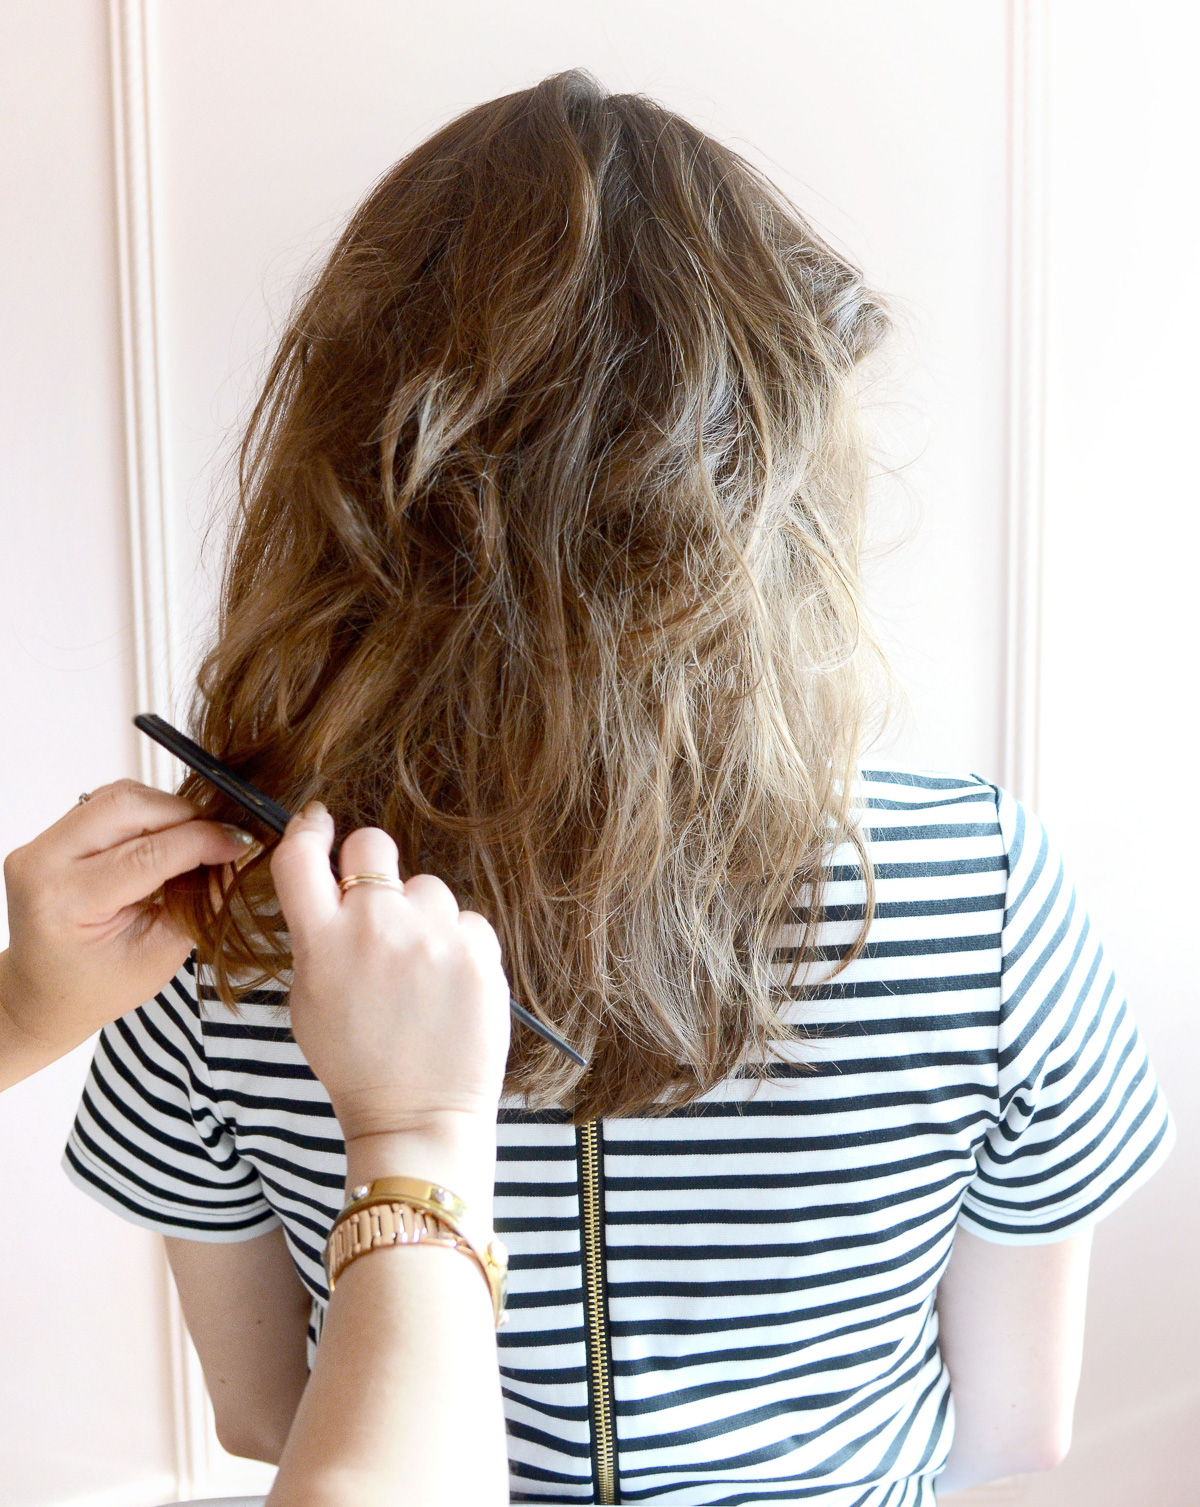 View More: http://cassandramonroe.pass.us/rainy-hair-tutorials